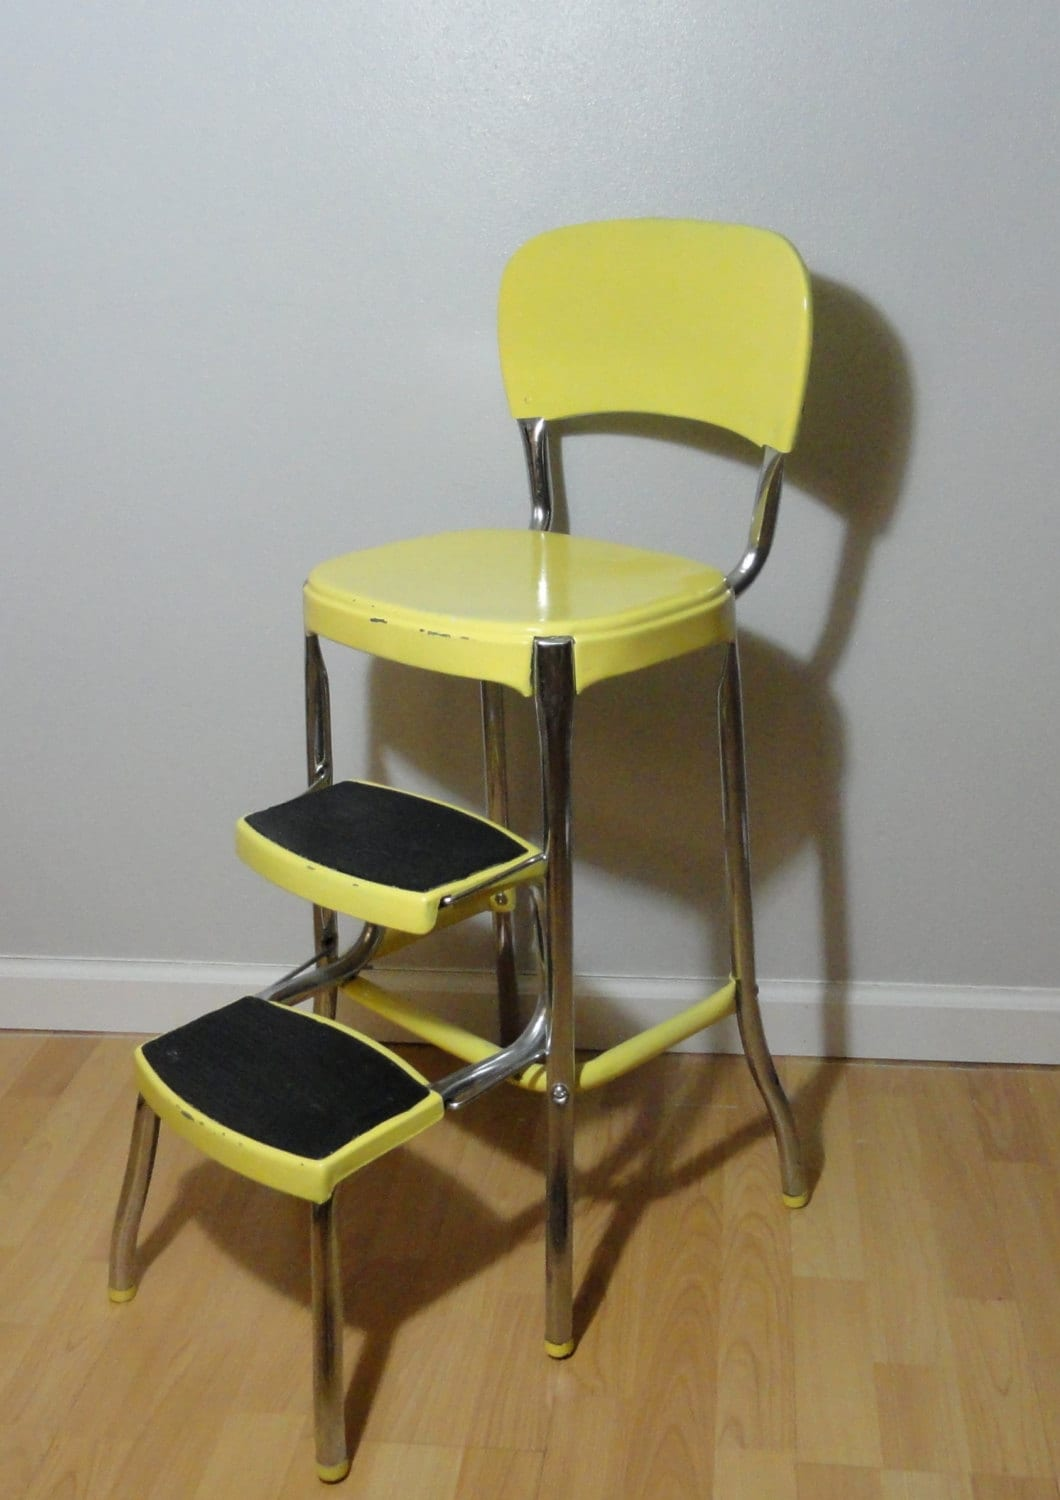 retro chair step stool power lift chairs item details